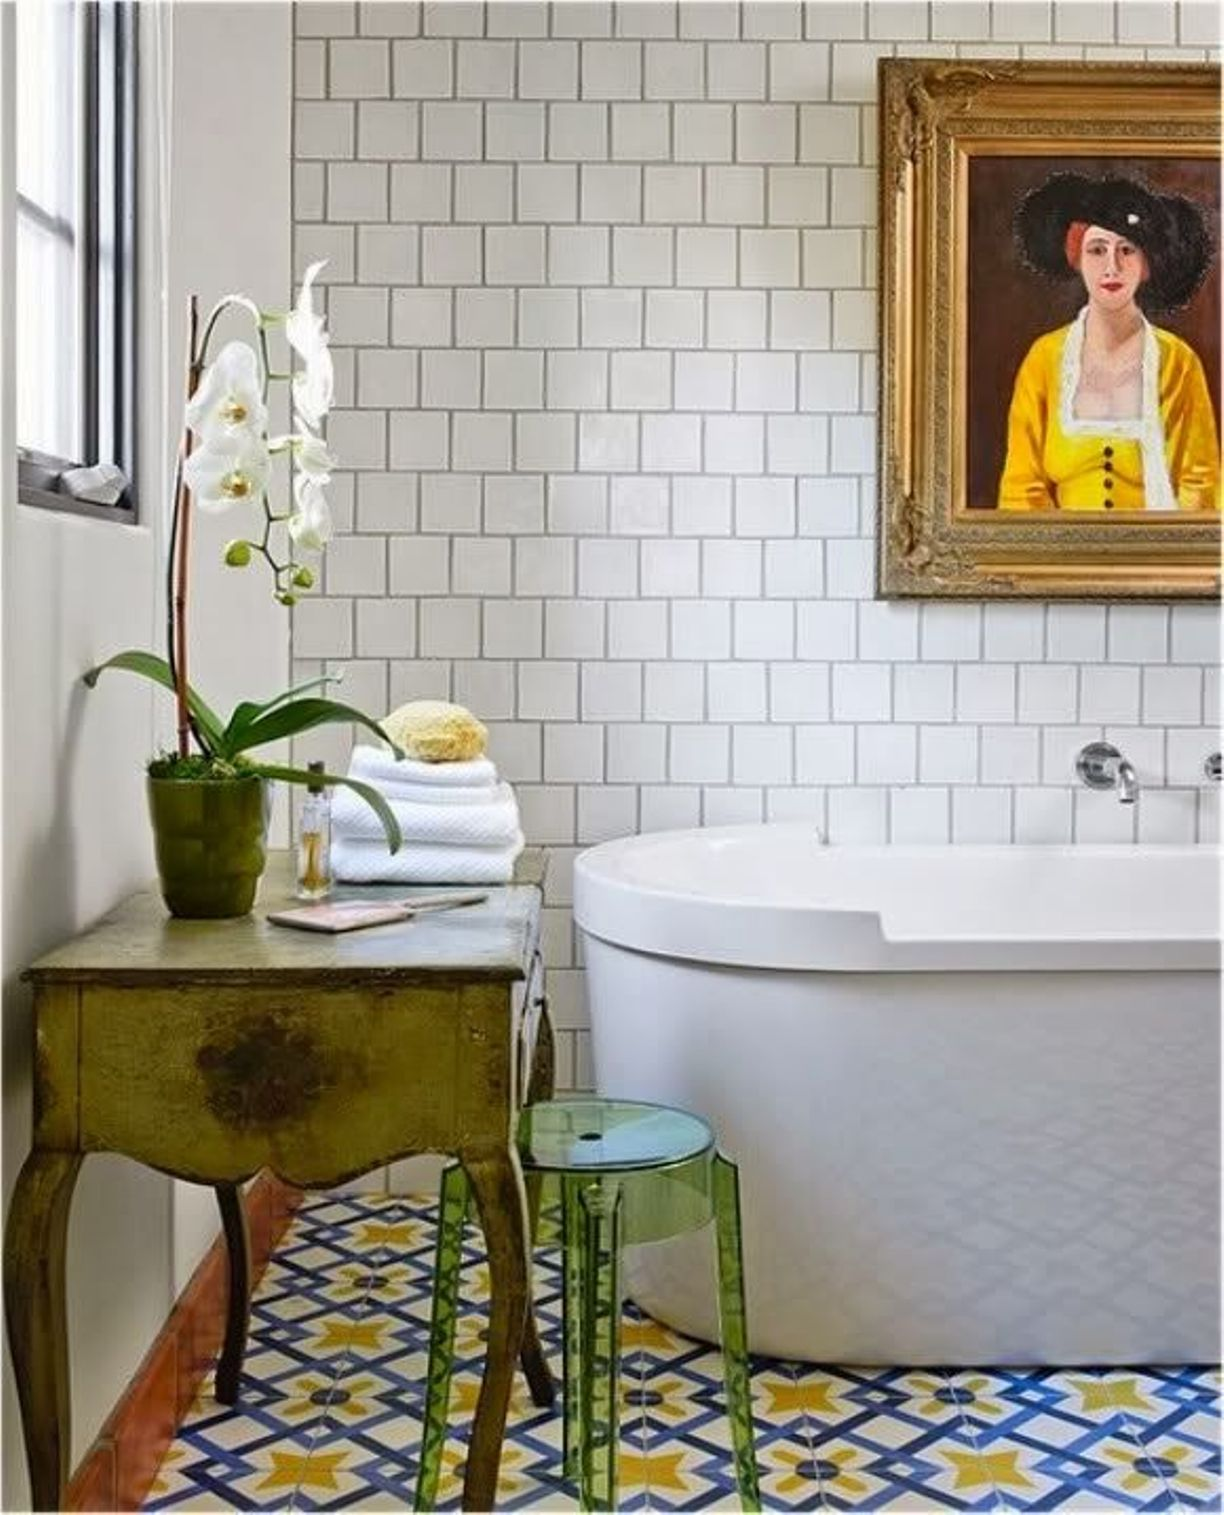 Eclectic Bathroom with Subway Tile Bathroom